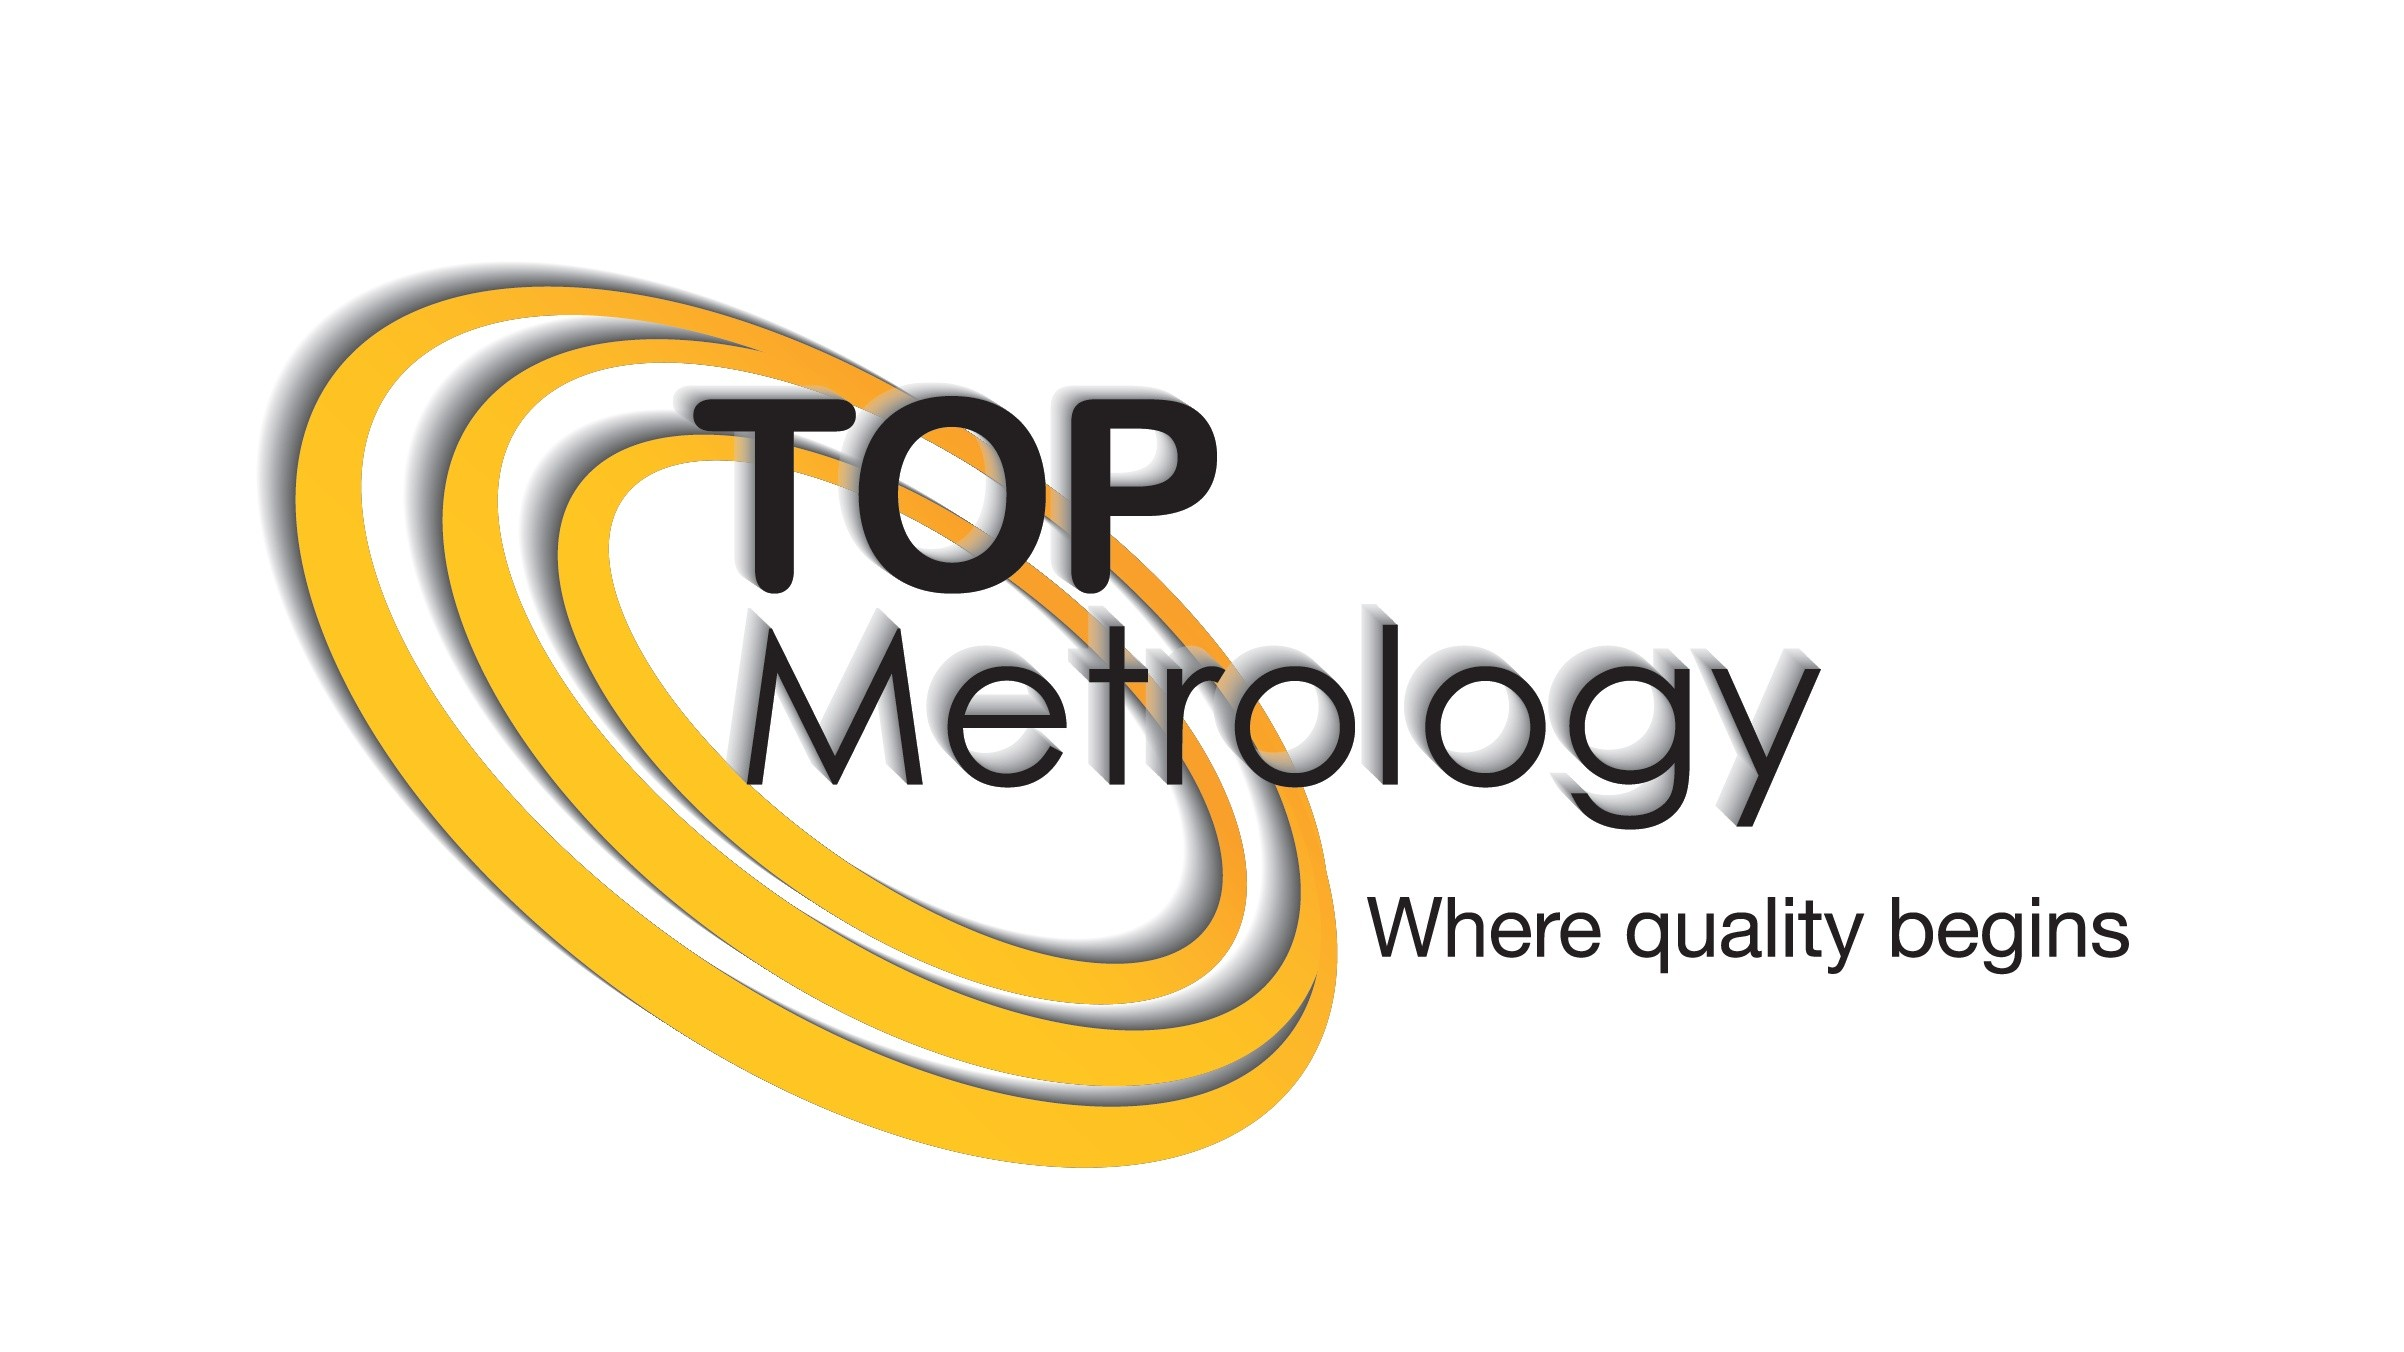 TOP Metrology